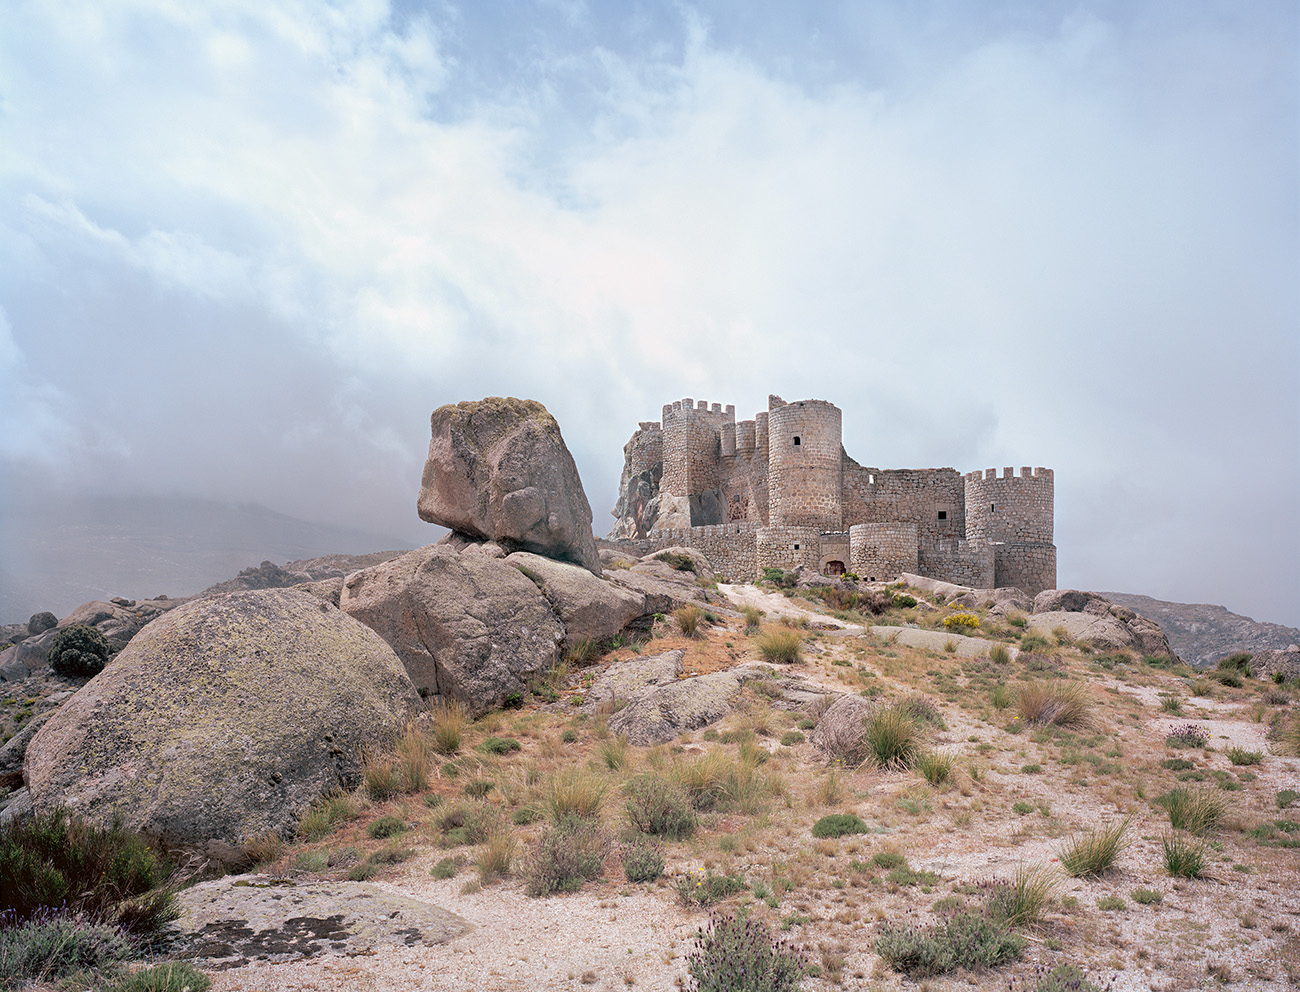 Manqueospese emerges from the rocky terrain of Ávila in Spain. The 11-15th century structure is constructed with native granite. Photography: Frédéric Chaubin/courtesy Taschen